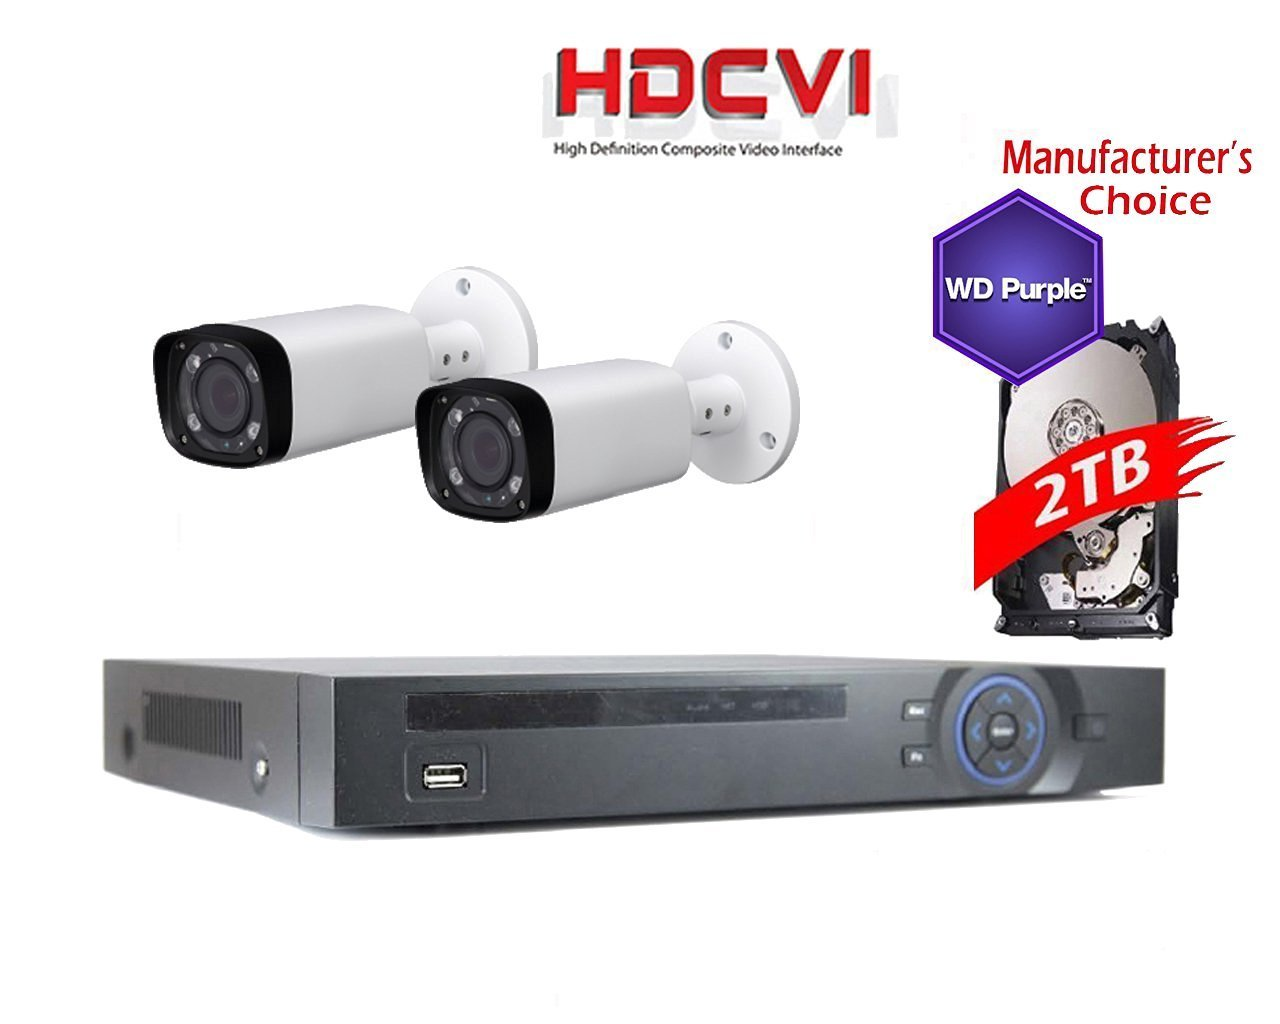 iCare 1080P Package: 8CH HDCVI DVR 2TB WD Purple HDD Pre-installed + 2 x 2MP IR60M Waterproof Bullet Camera,2.7-12mm, 2 years warranty, Local Support